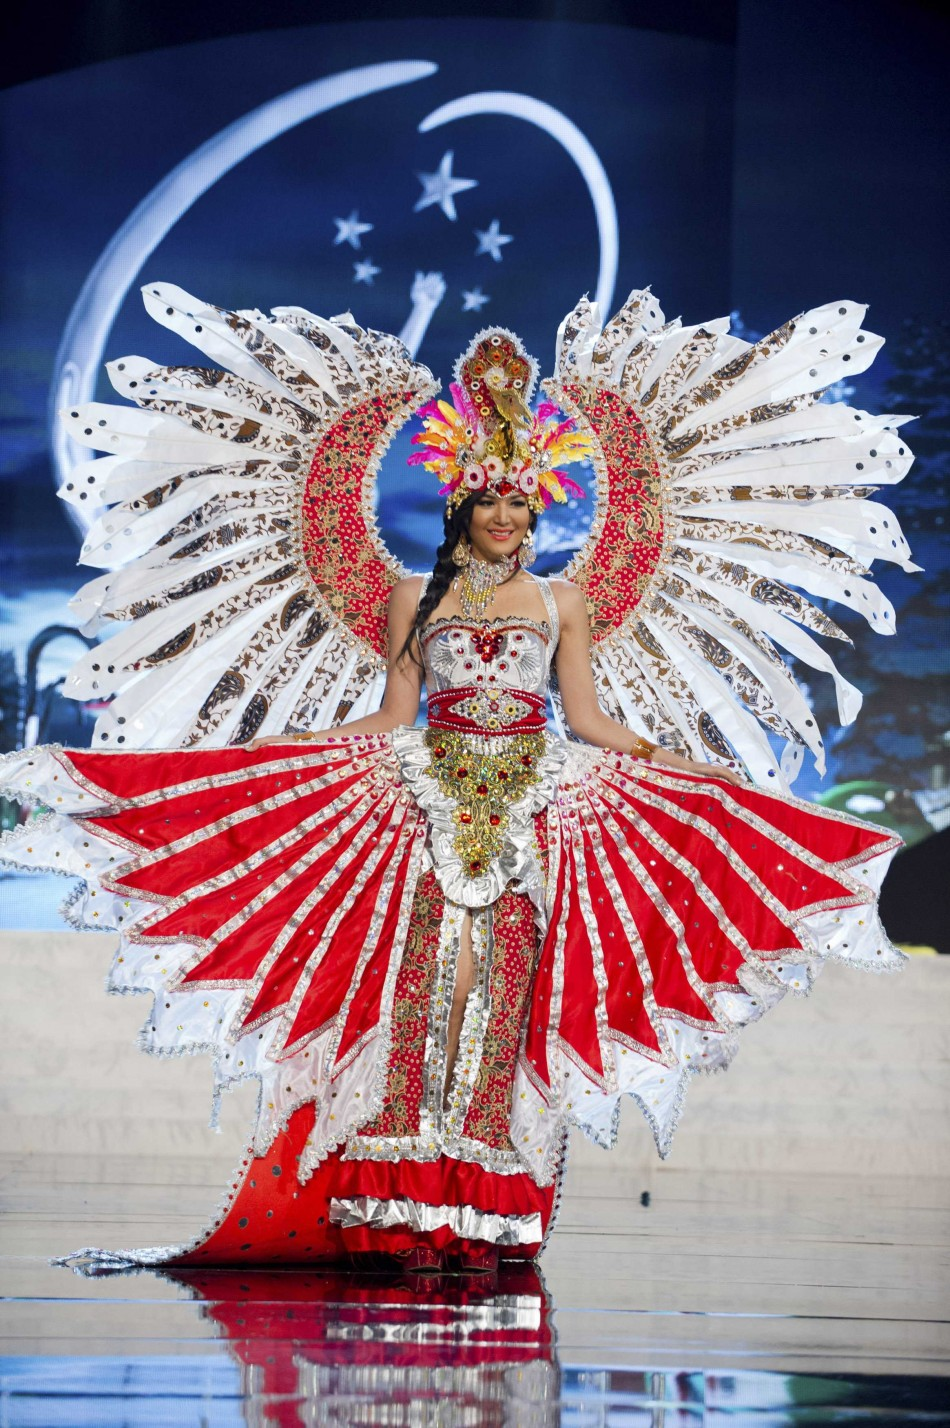 Miss Indonesia Maria Selena on stage at the 2012 Miss Universe National Costume Show at PH Live in Las Vegas